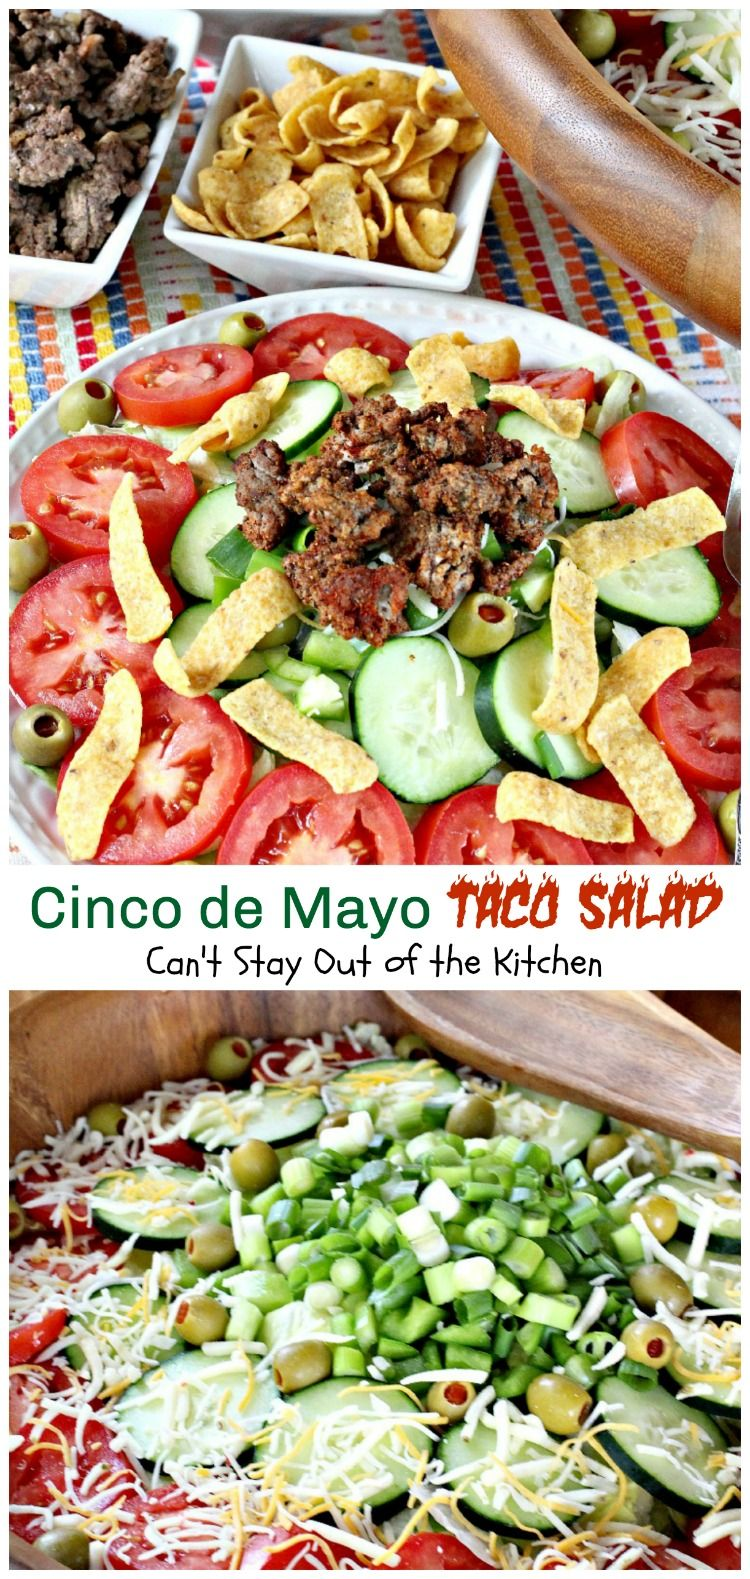 Cinco de Mayo Taco Salad | Can't Stay Out of the Kitchen | wonderful #Tex-Mex #salad with delicious southwest flavor. Great for #CincodeMayo. #cheese #groundbeef  #Fritos